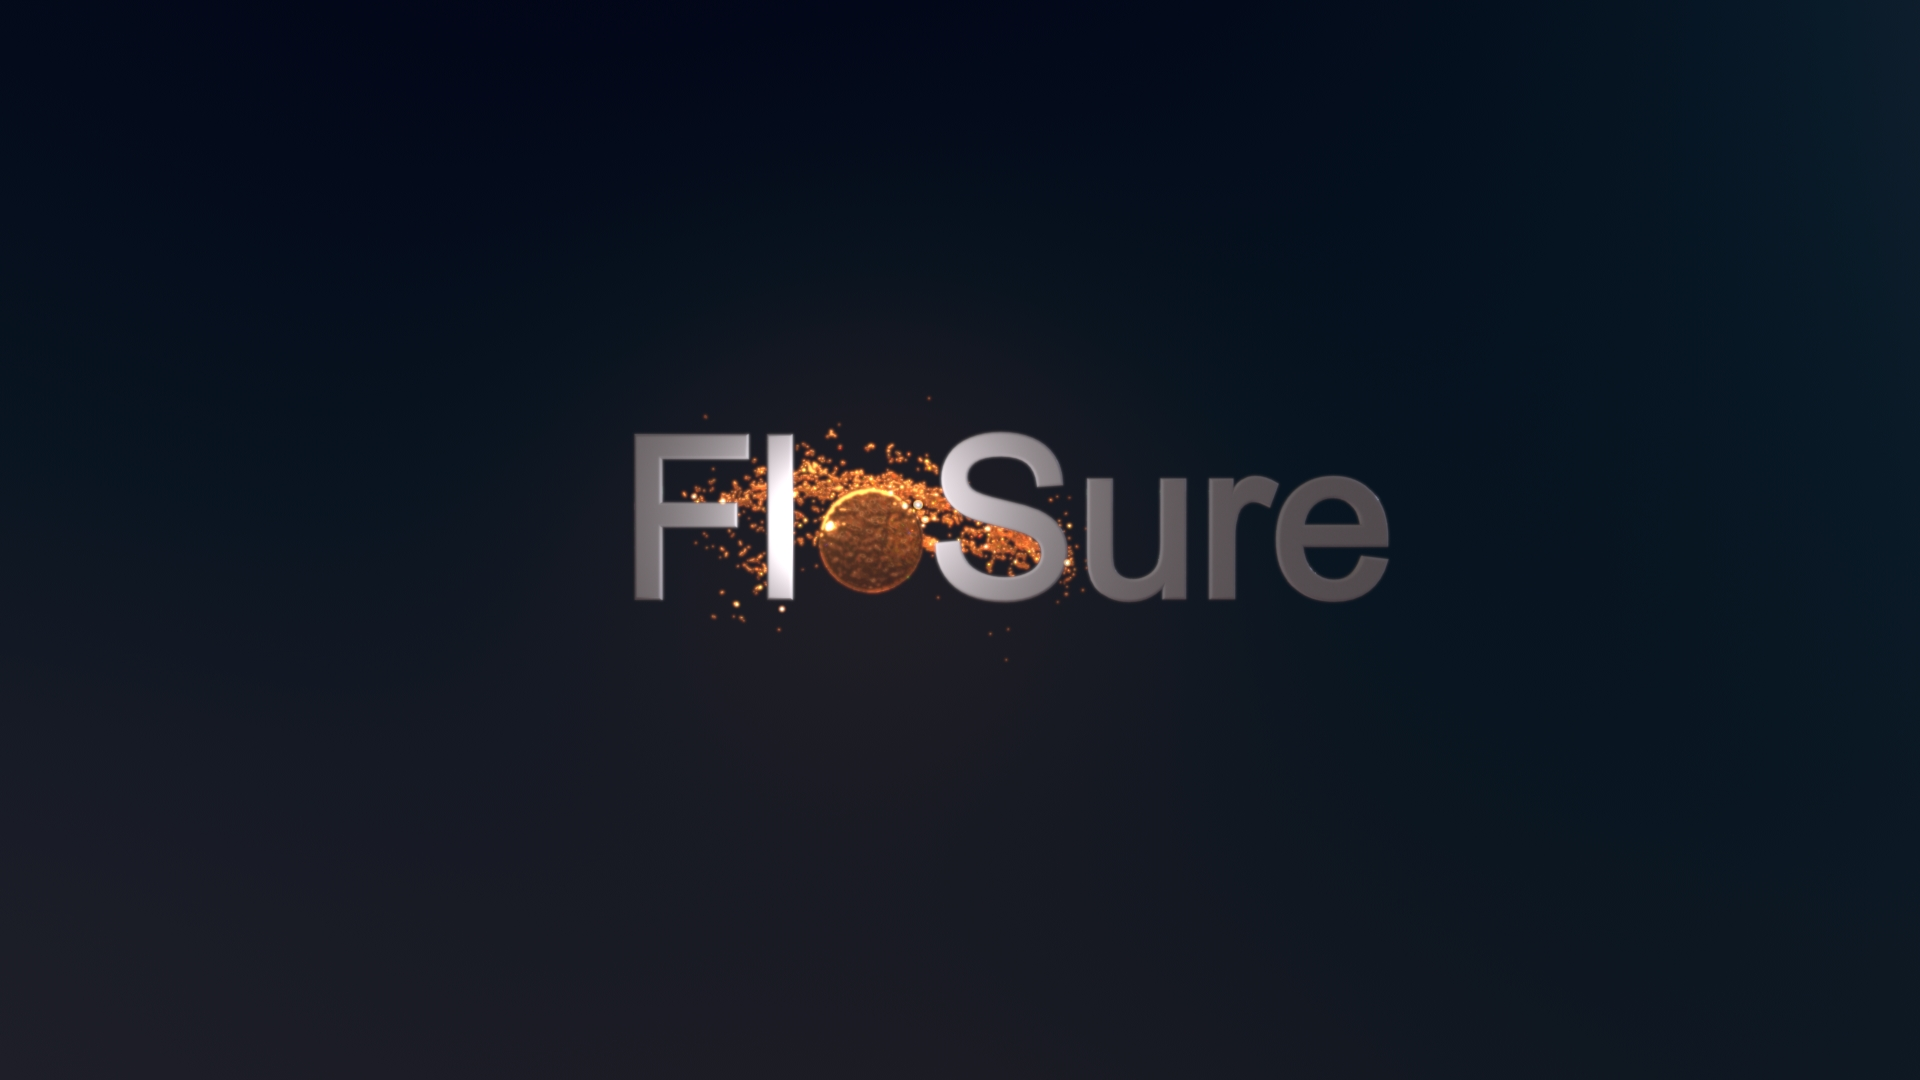 Flosure logo on black background